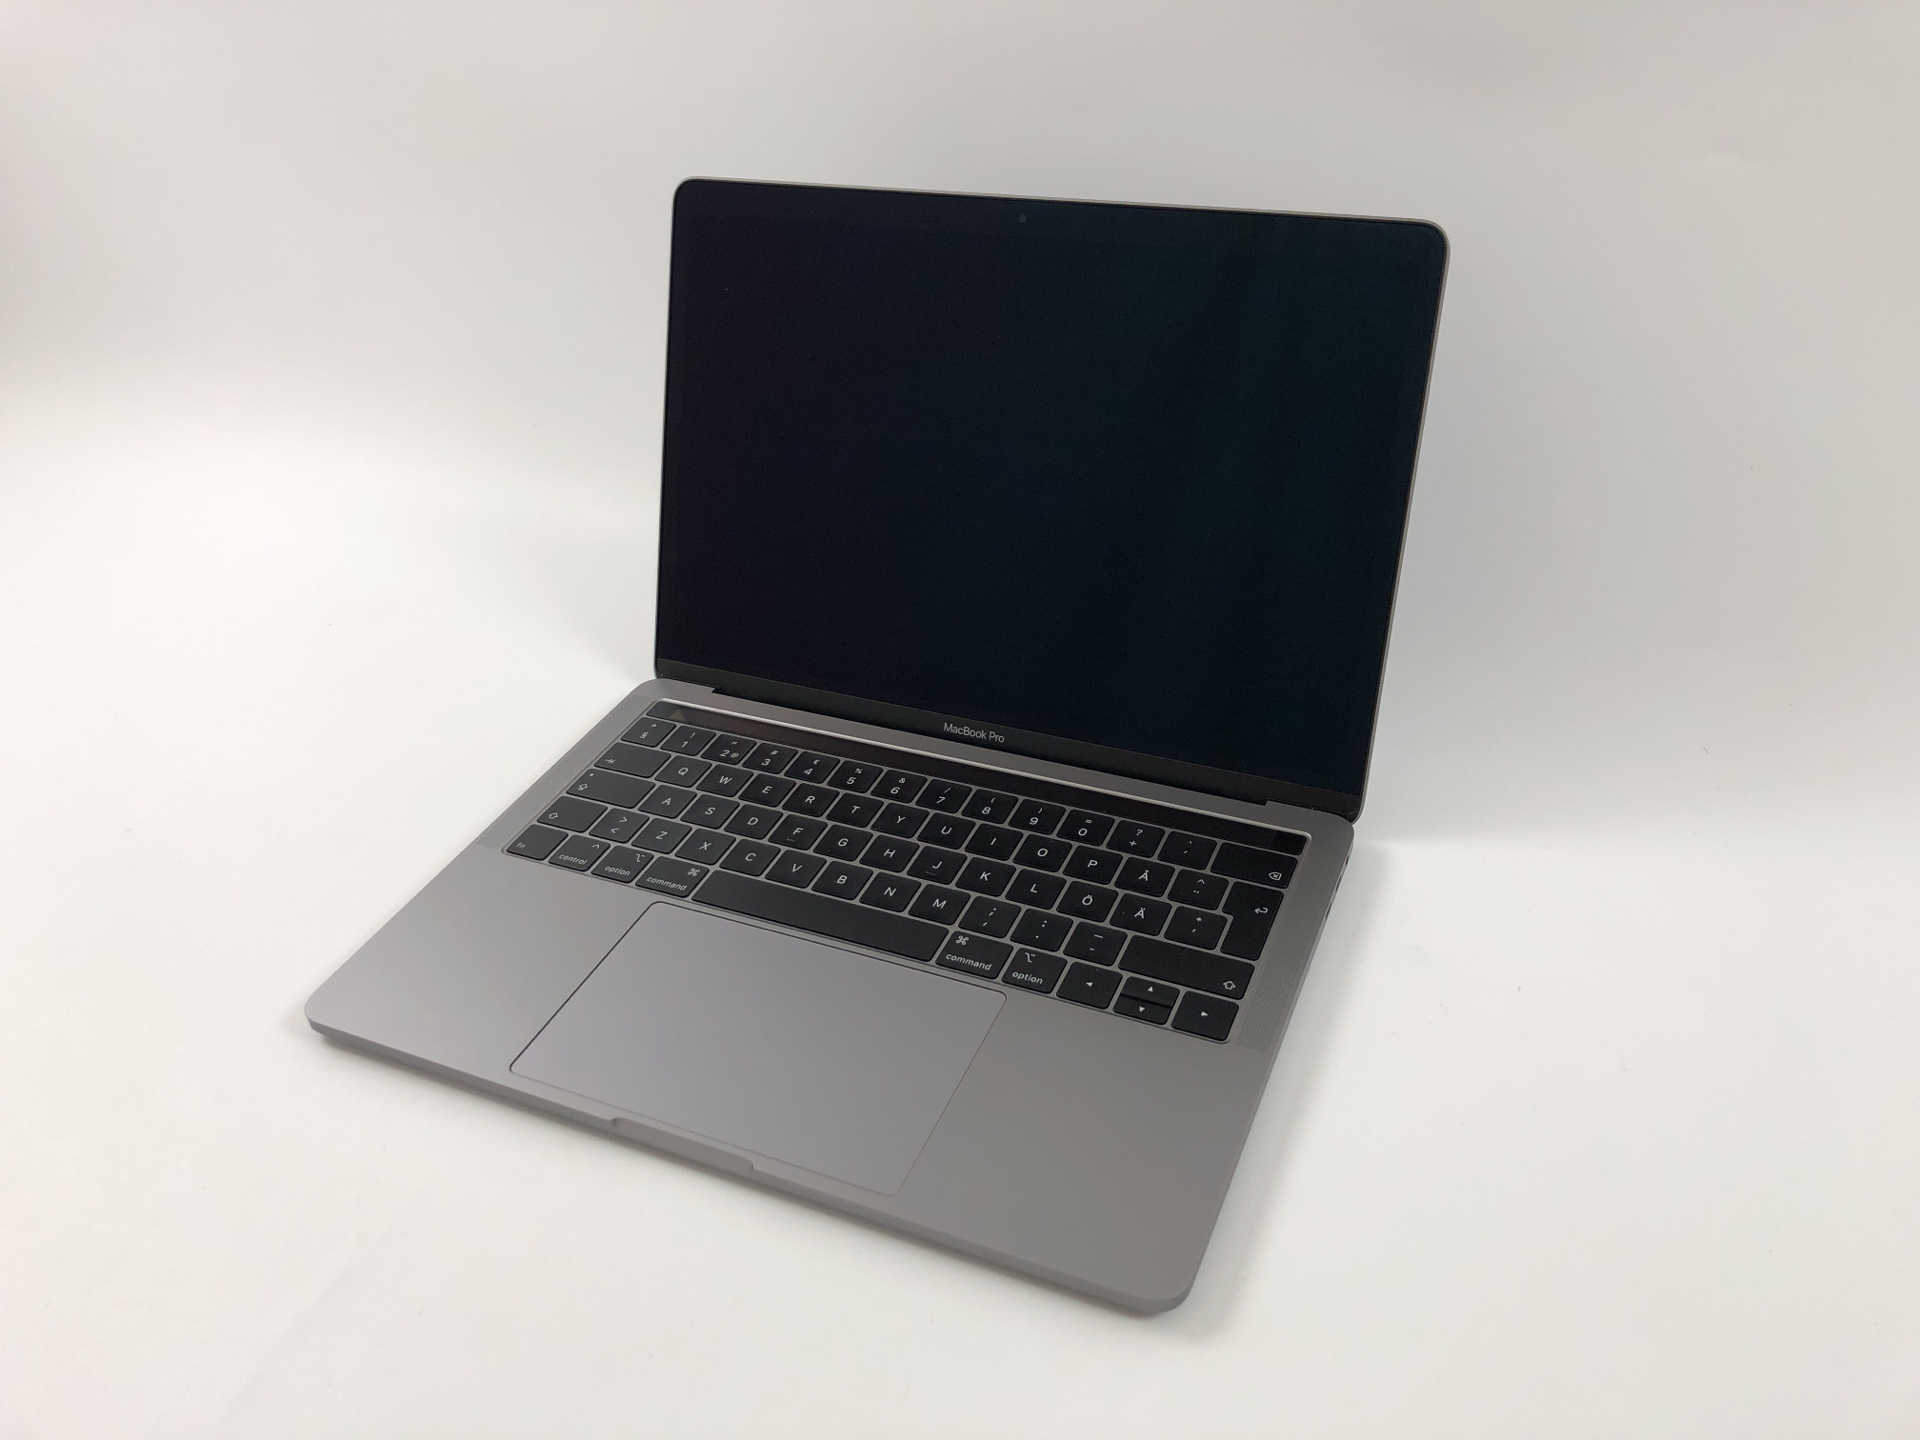 "MacBook Pro 13"" 4TBT Mid 2018 (Intel Quad-Core i5 2.3 GHz 8 GB RAM 512 GB SSD), Space Gray, Intel Quad-Core i5 2.3 GHz, 8 GB RAM, 512 GB SSD, Kuva 1"